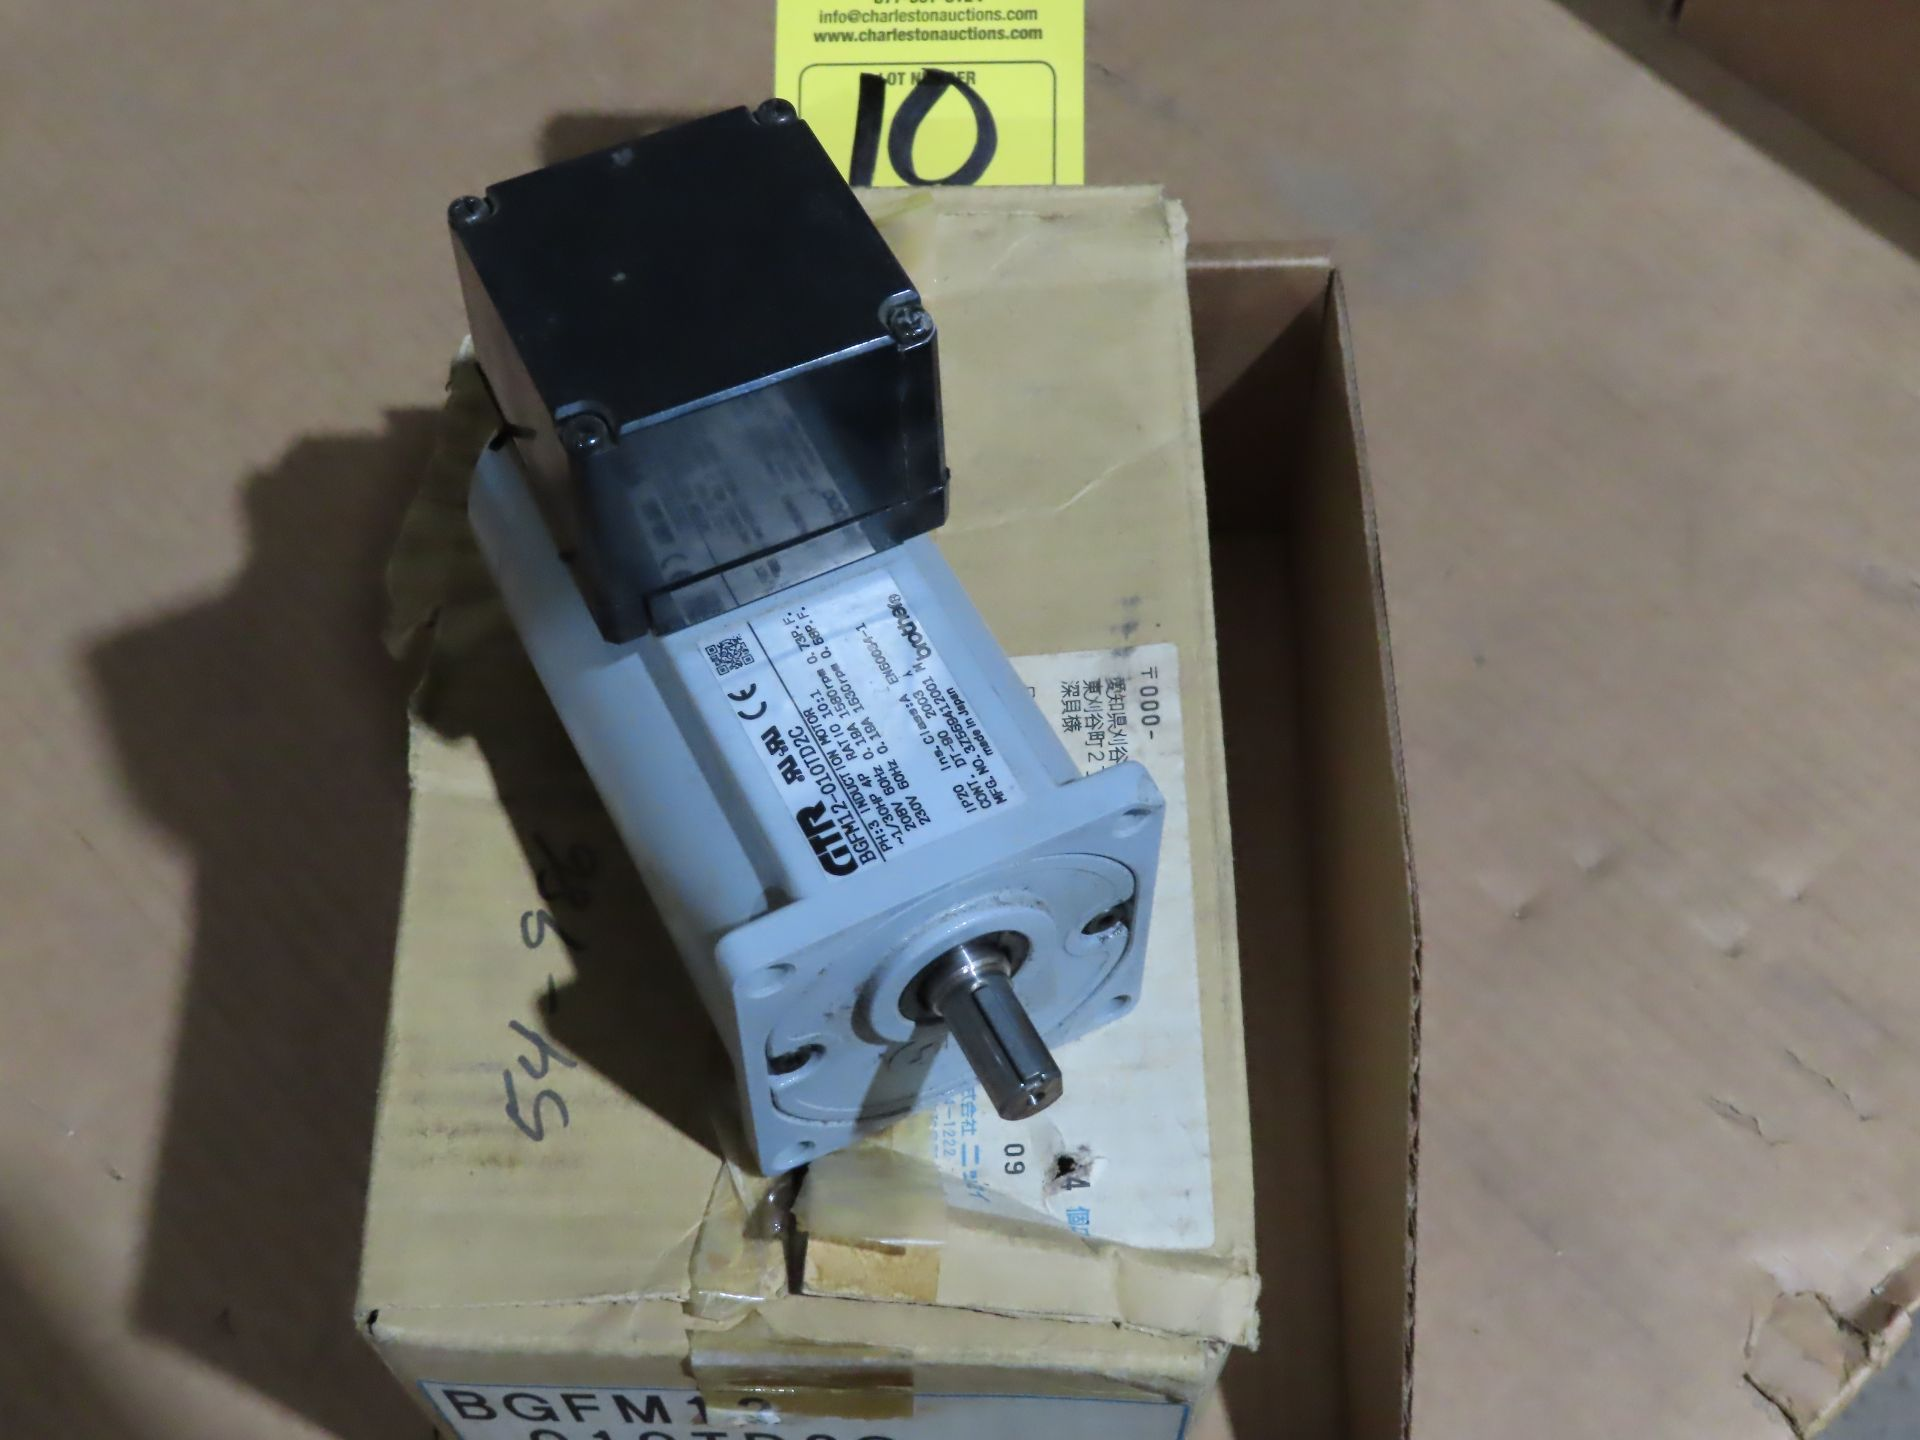 Lot 10 - Brother gear motor model BGFM12-010TD2C, new in box, as always, with Brolyn LLC auctions, all lots